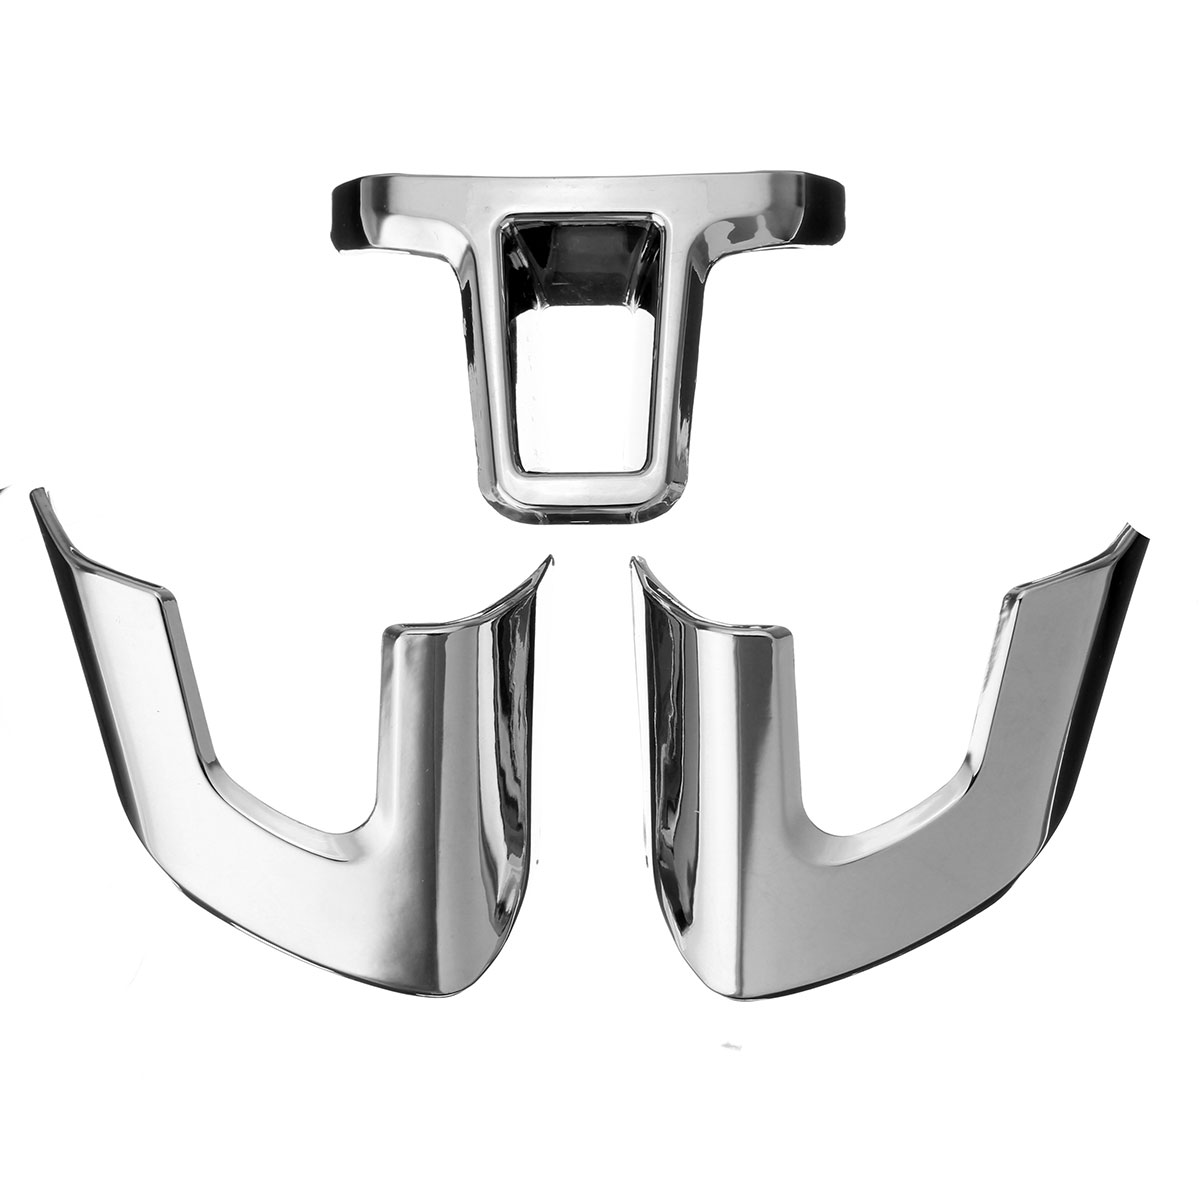 Car Steering Wheel Sticker Trim Covers For Volkswagen VW Golf 6 MK6 2009 2010 2011 2012 Polo Bora Sagitar ABS Chrome image